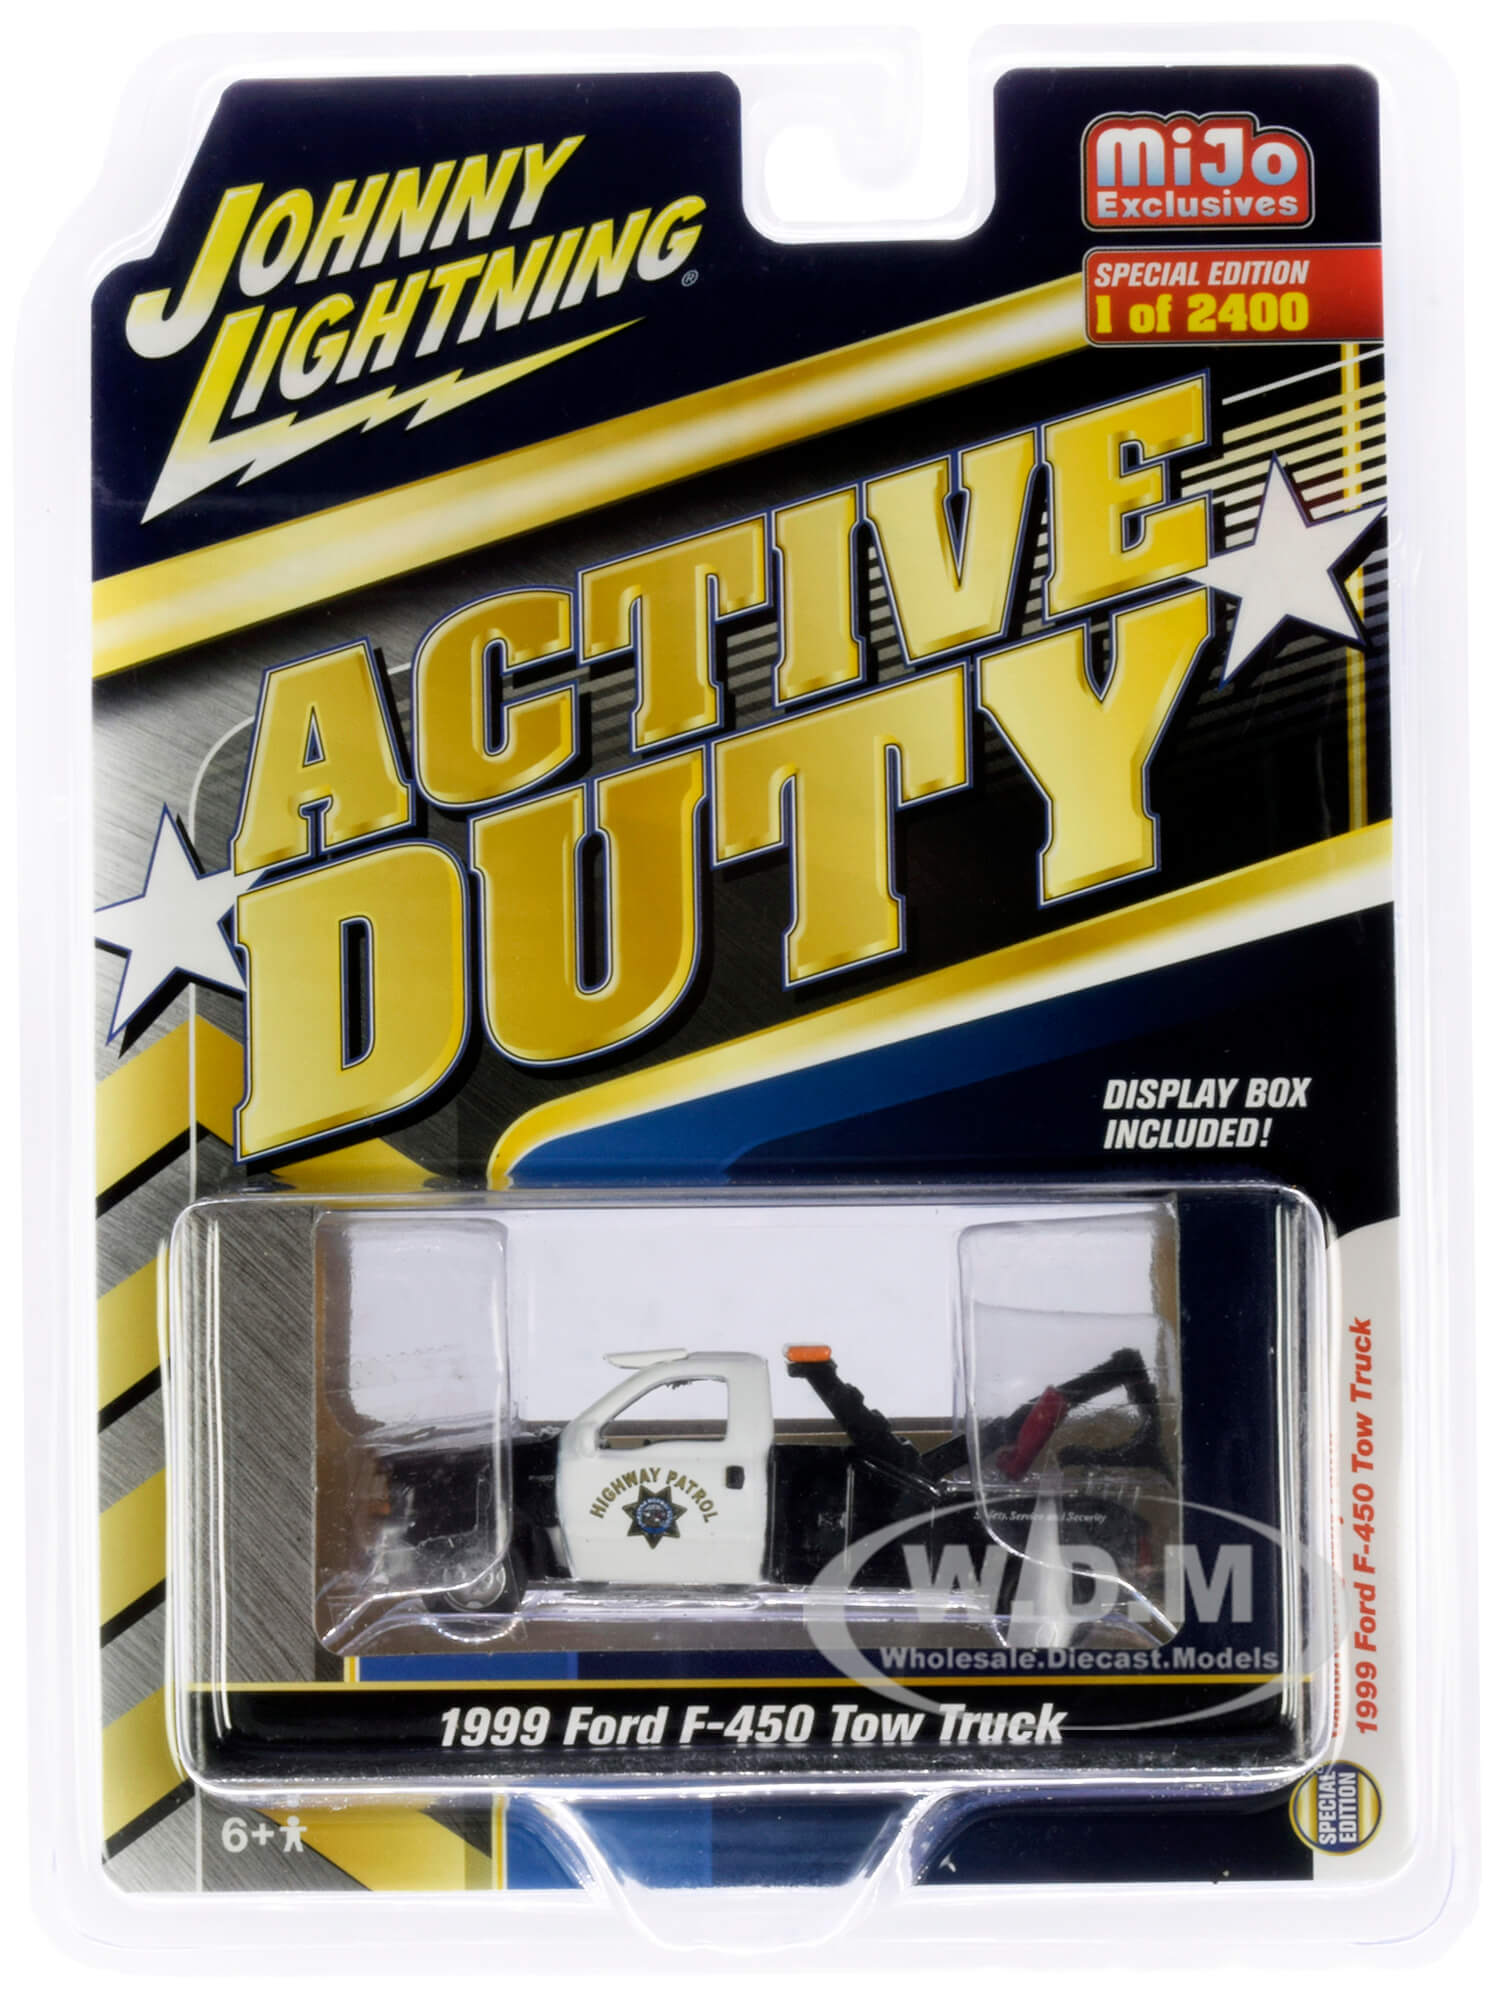 1999 Ford F-450 Police Tow Truck Black and White CHP (California Highway Patrol) Active Duty Limited Edition to 2400 pieces Worldwide 1/64 Diecas